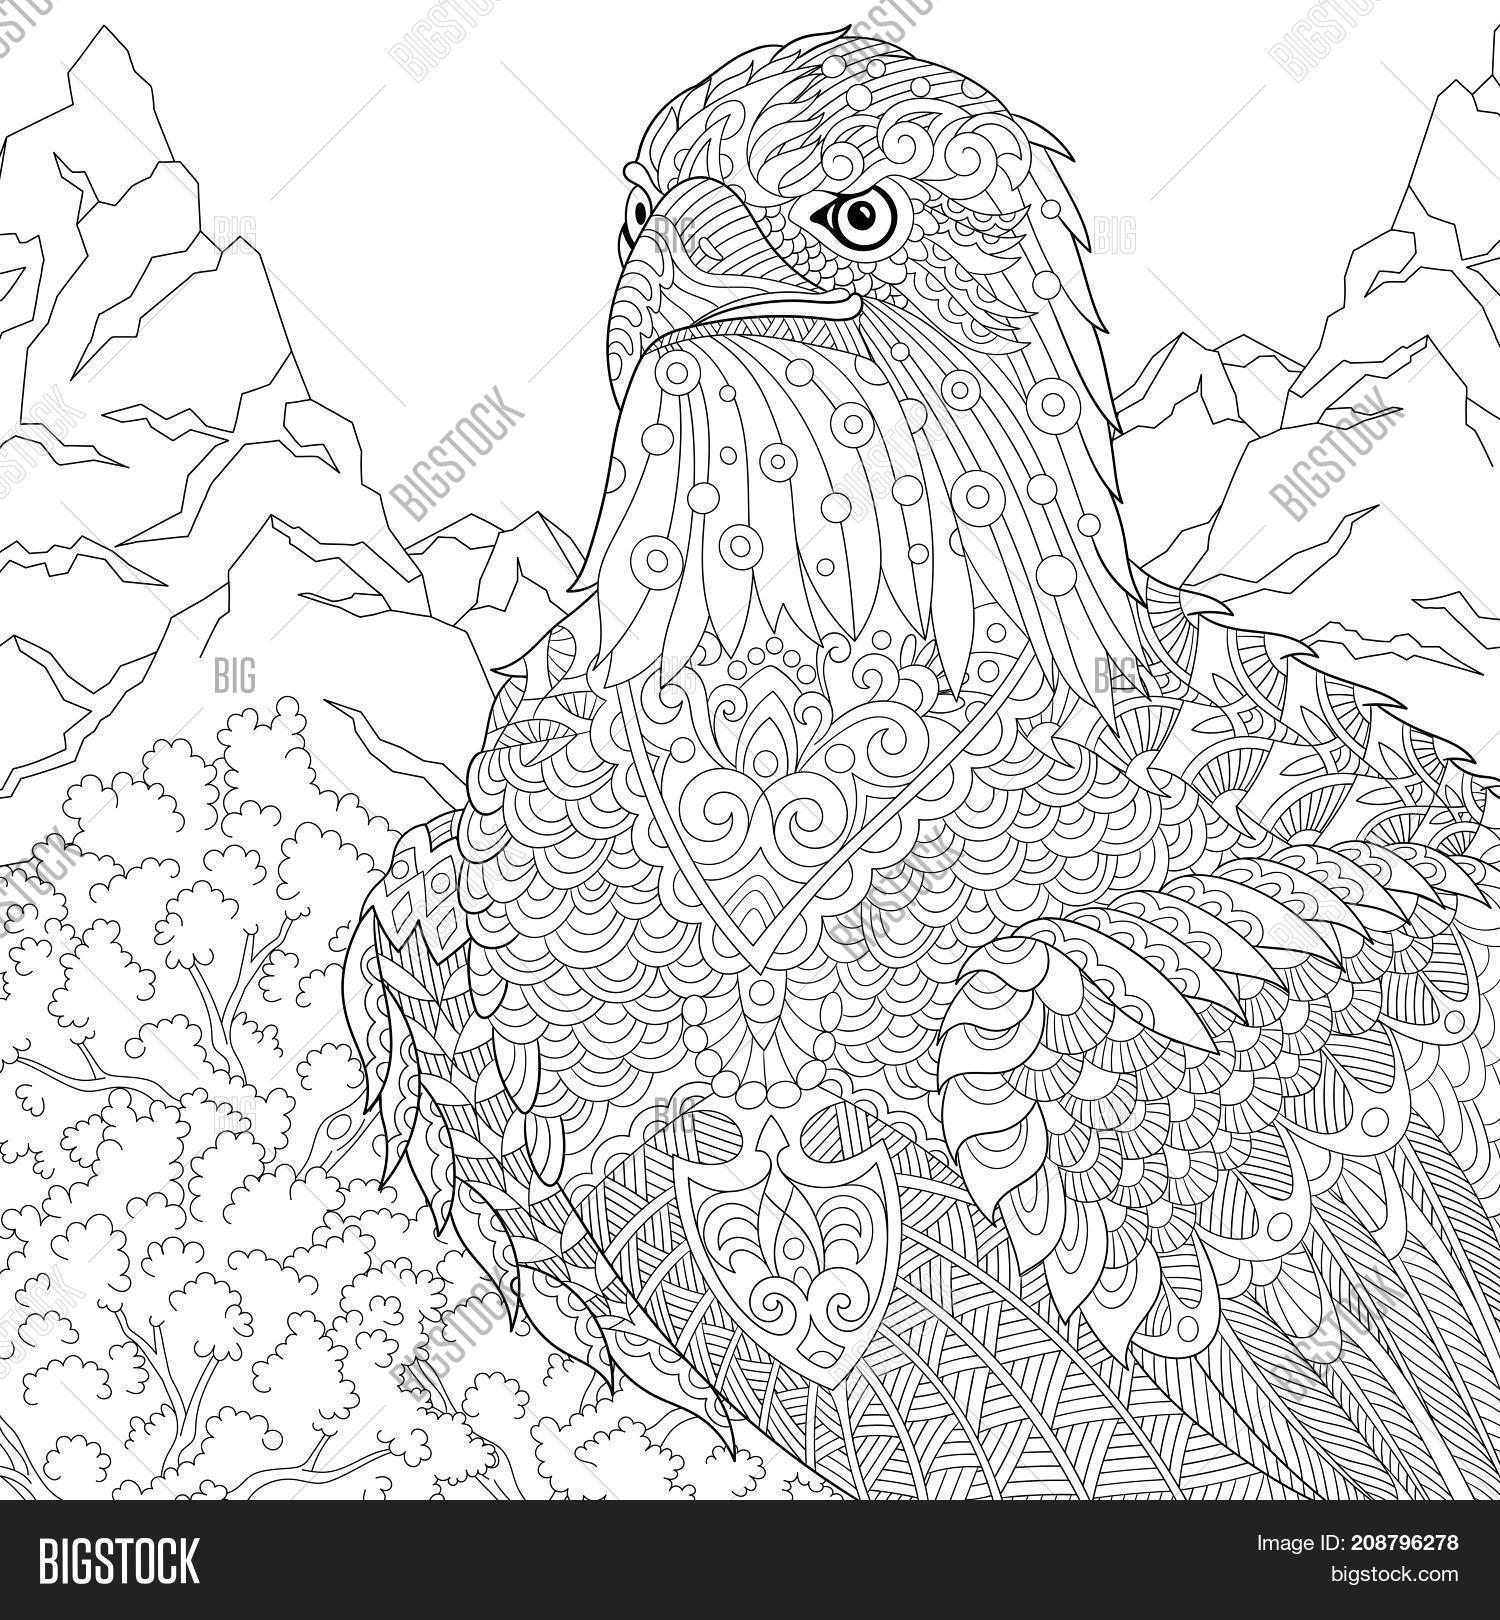 Coloring Page American Image & Photo (Free Trial) | Bigstock